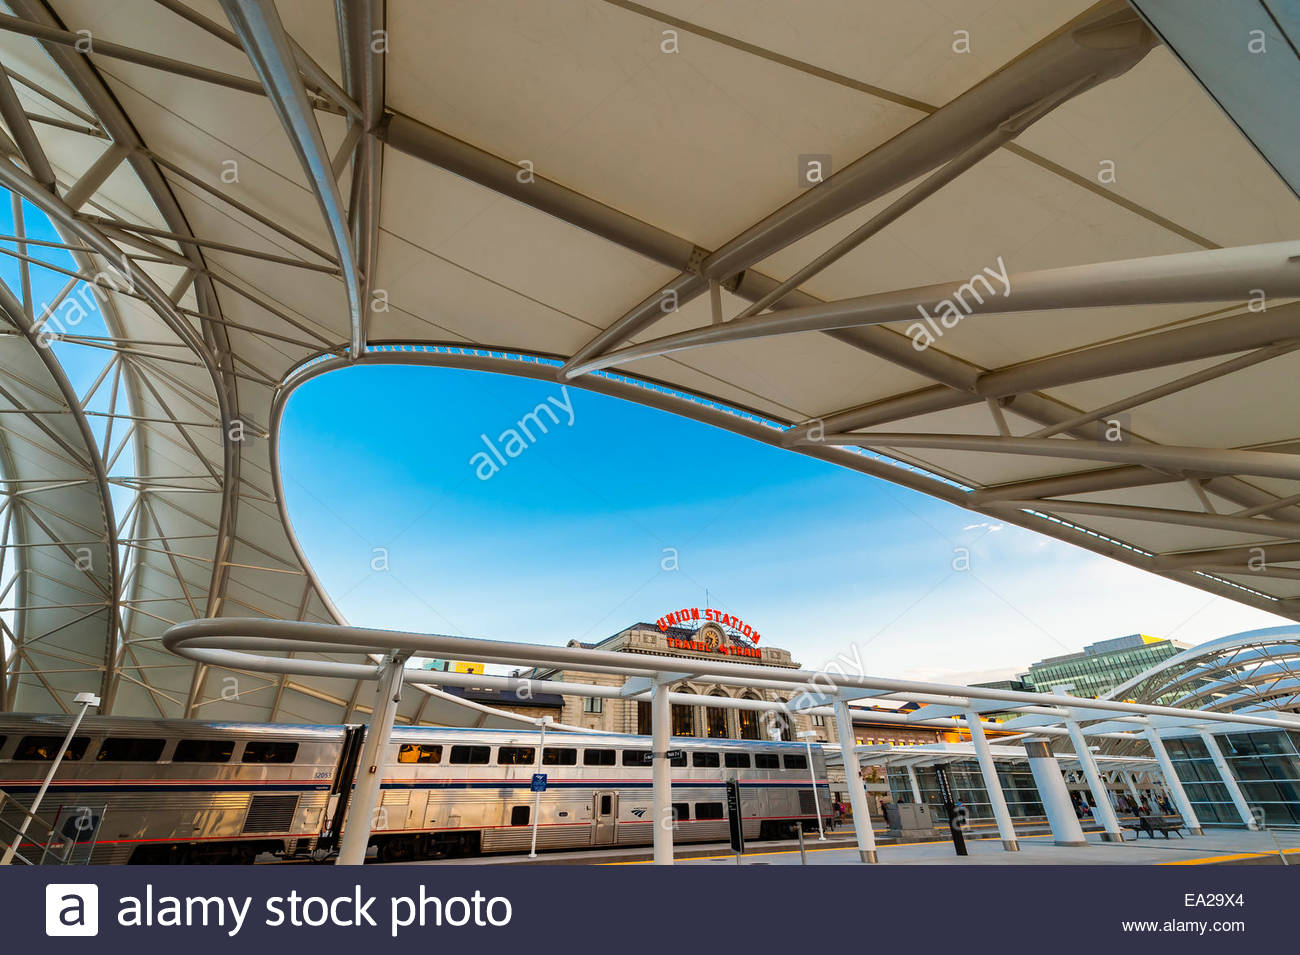 The California Zephyr en route from San Francisco to Chicago, at the newly renovated Denver Union Station, Downtown - Stock Image